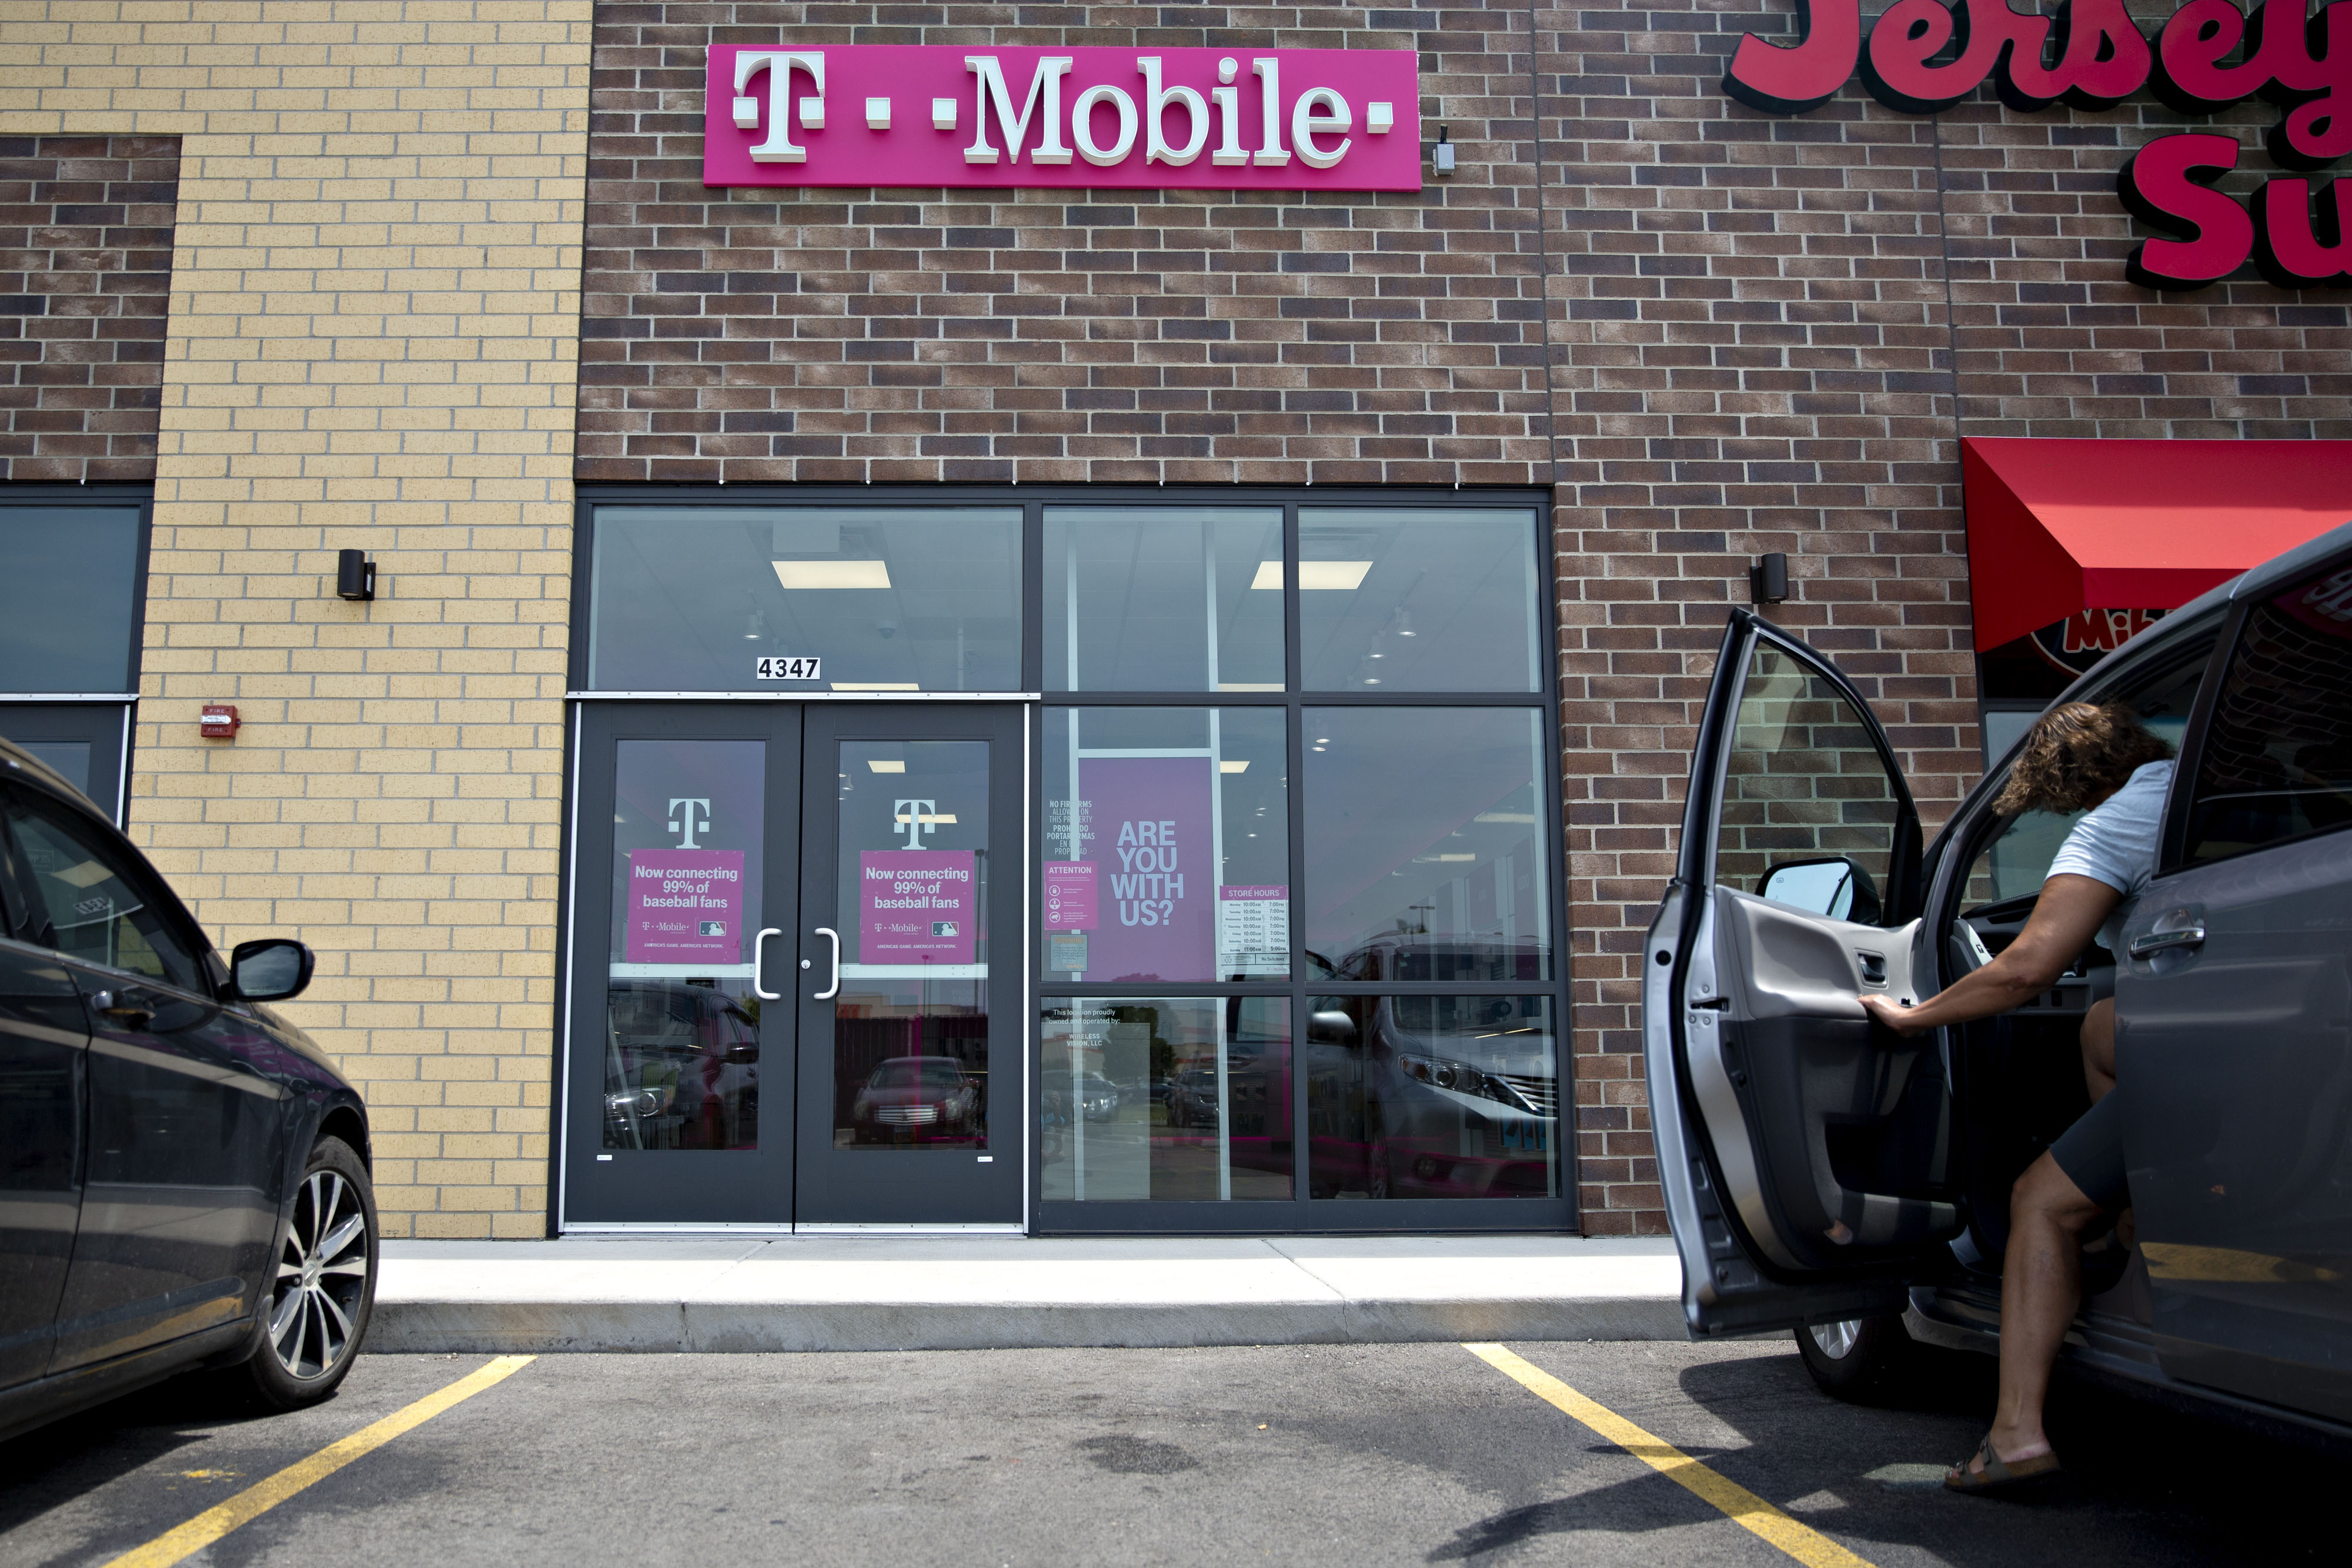 SoftBank Confirms It Is Mulling Deal to Sell T-Mobile Shares ...